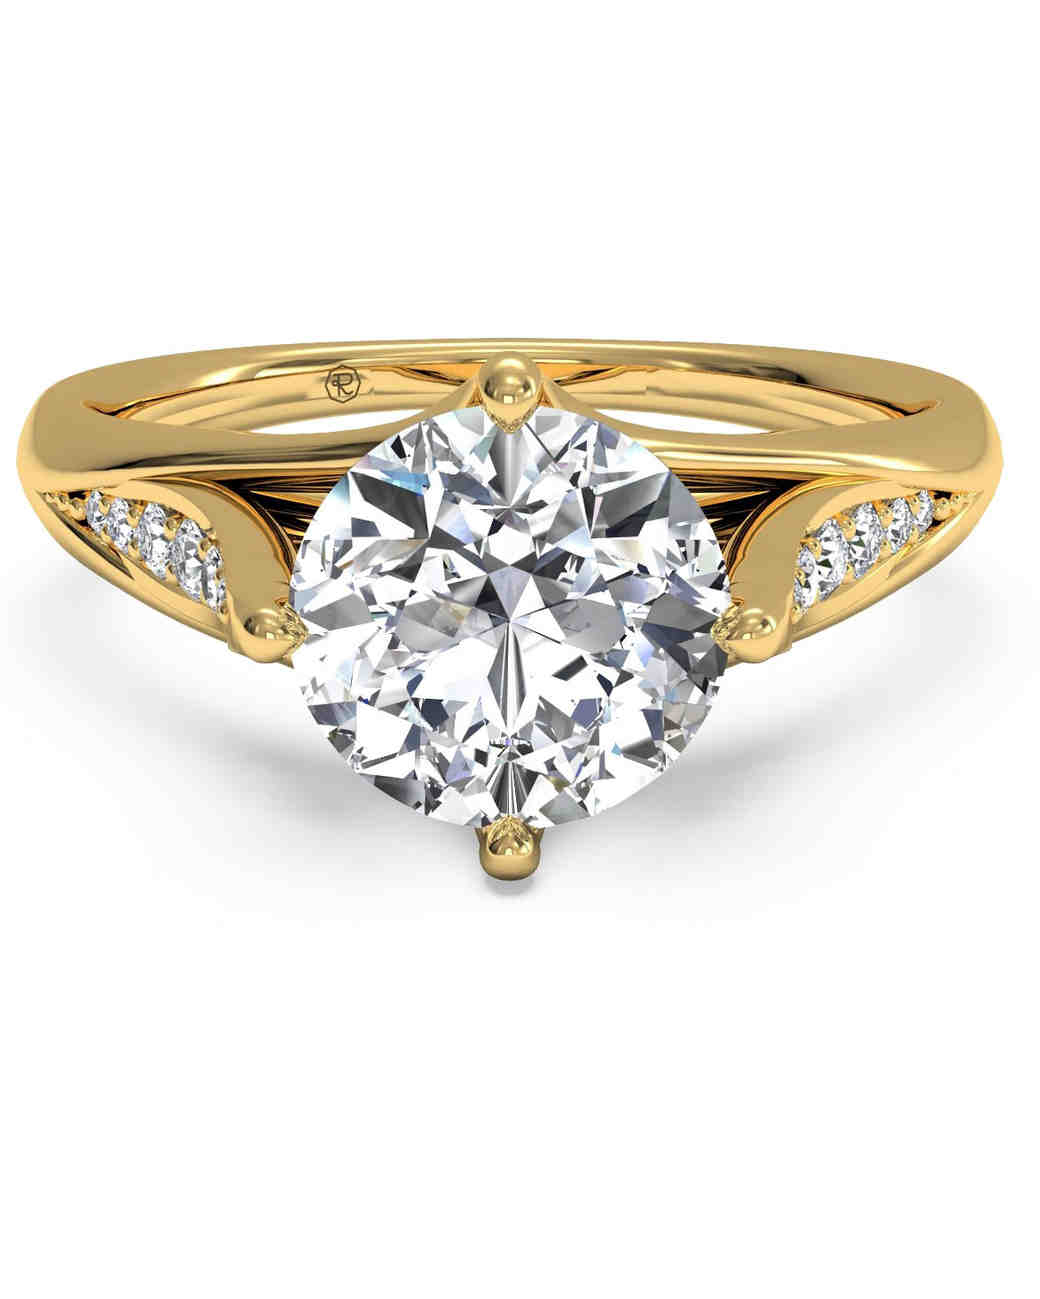 Ritani vintage engagement ring with tulip diamond band